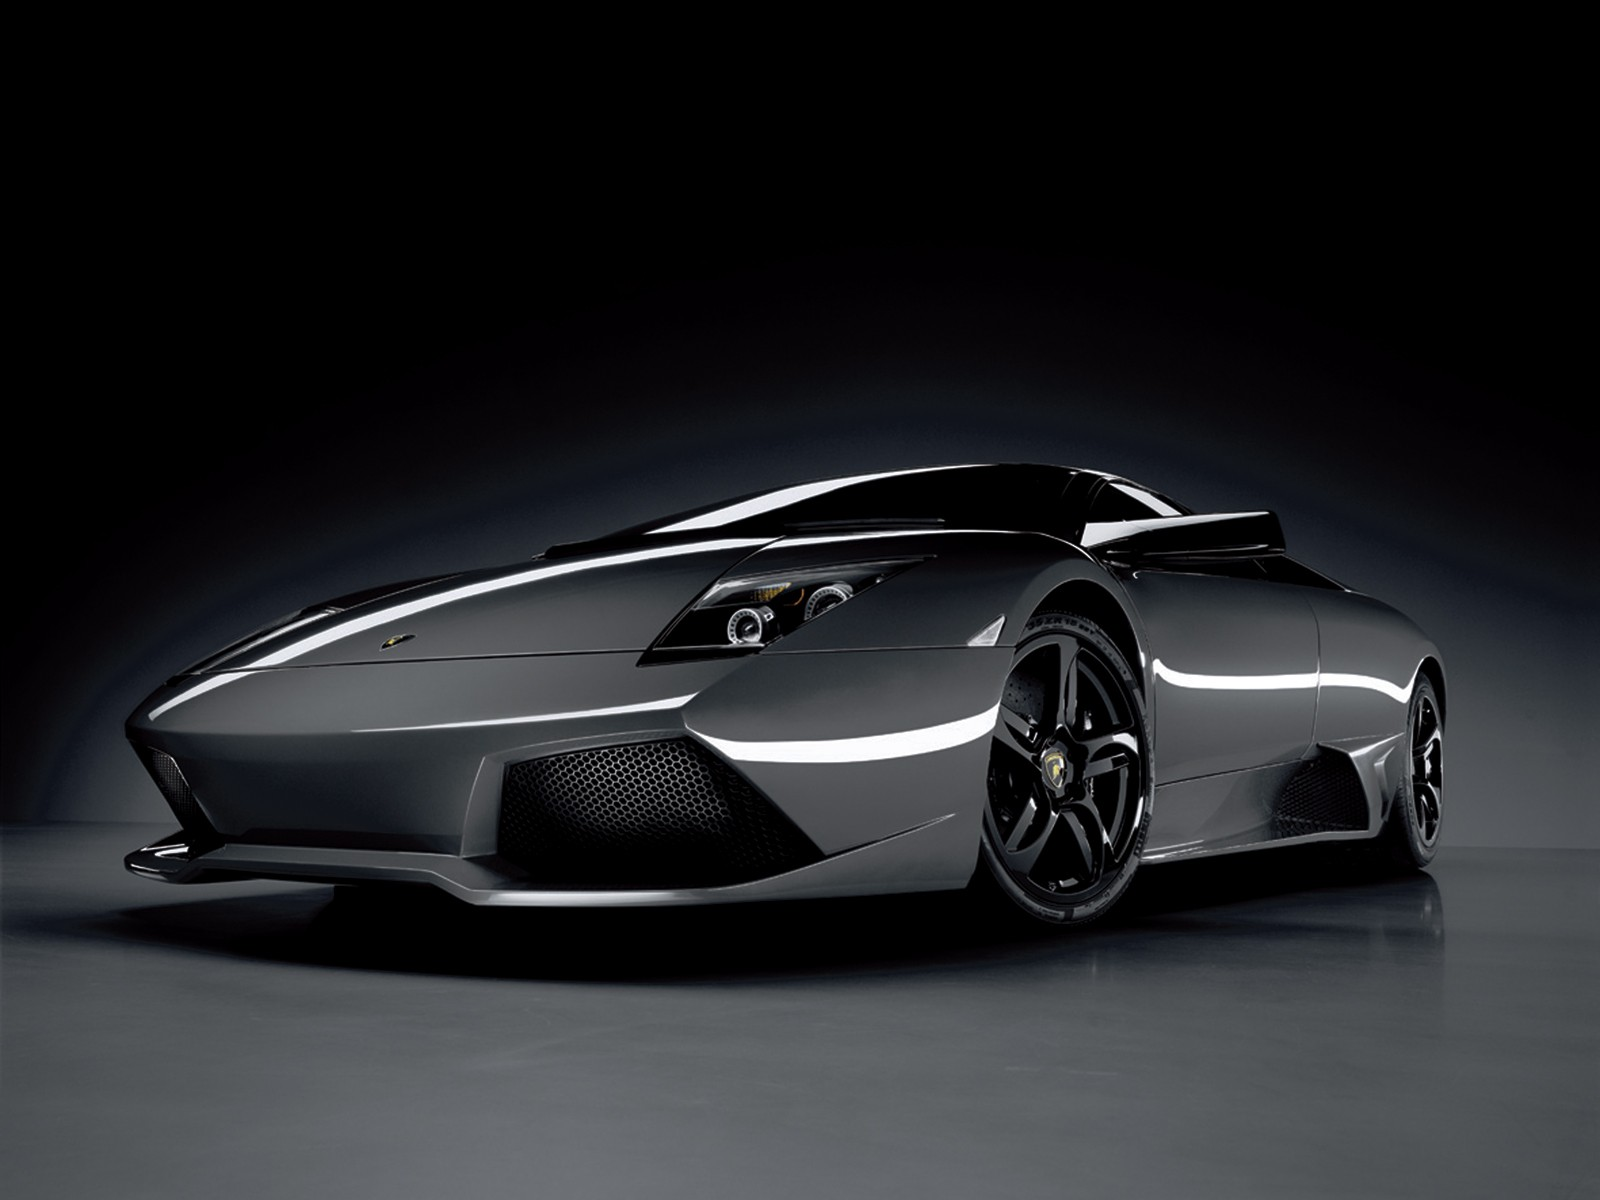 2010-2011 THE Lamborghini-